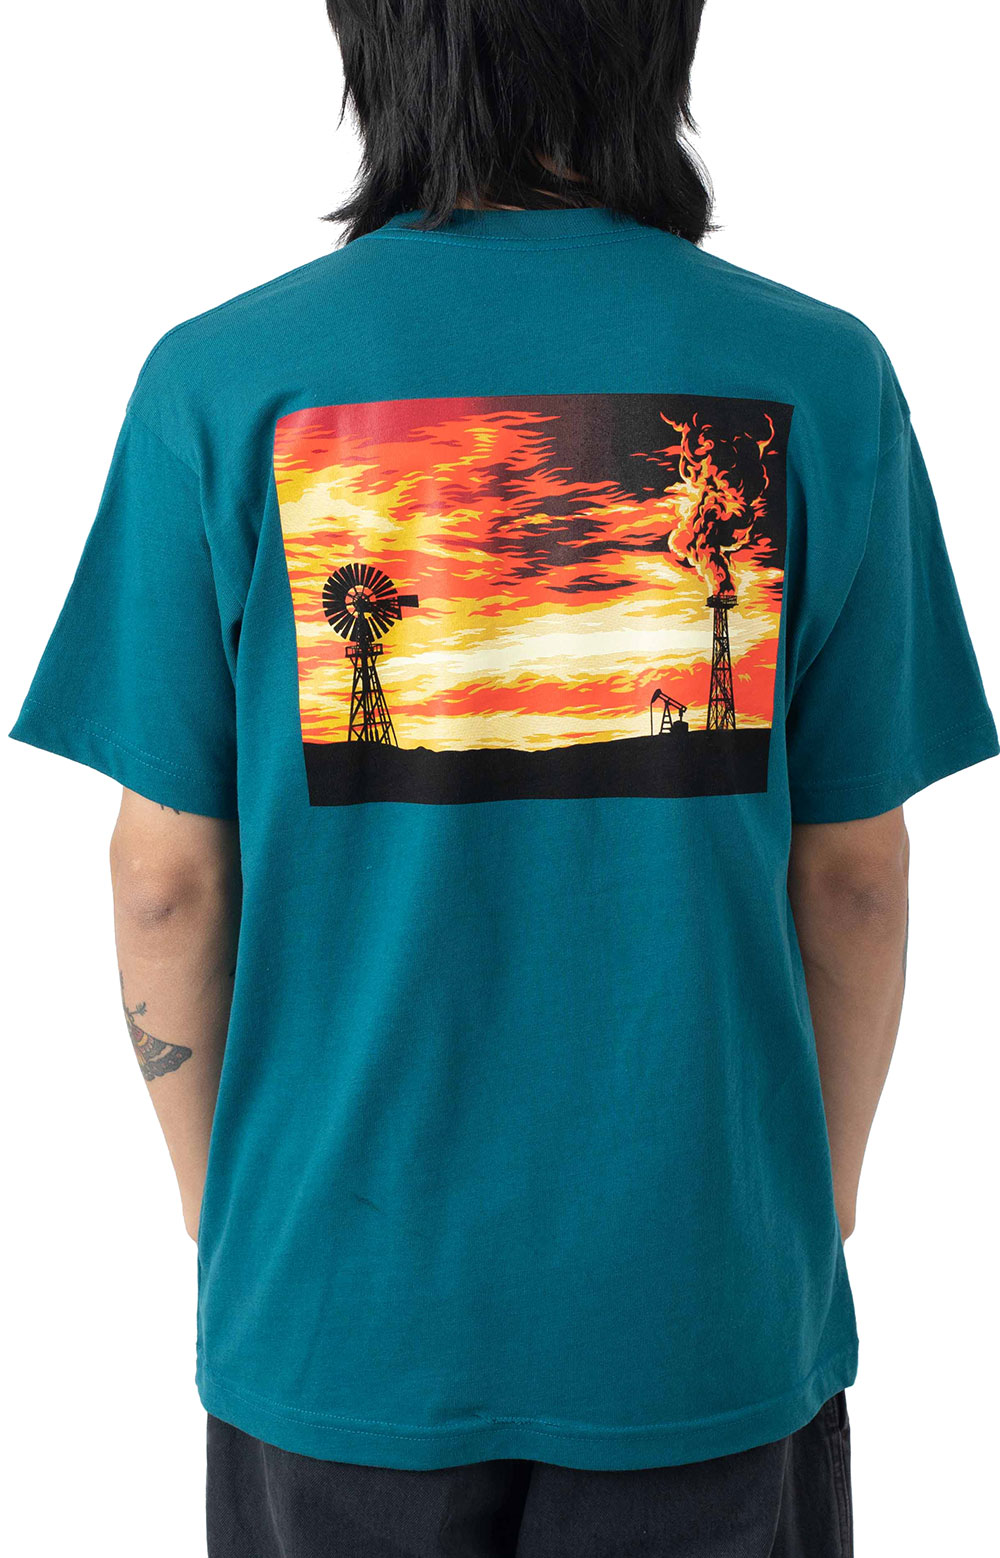 Obey Windmill T-Shirt - Shaded Spruce